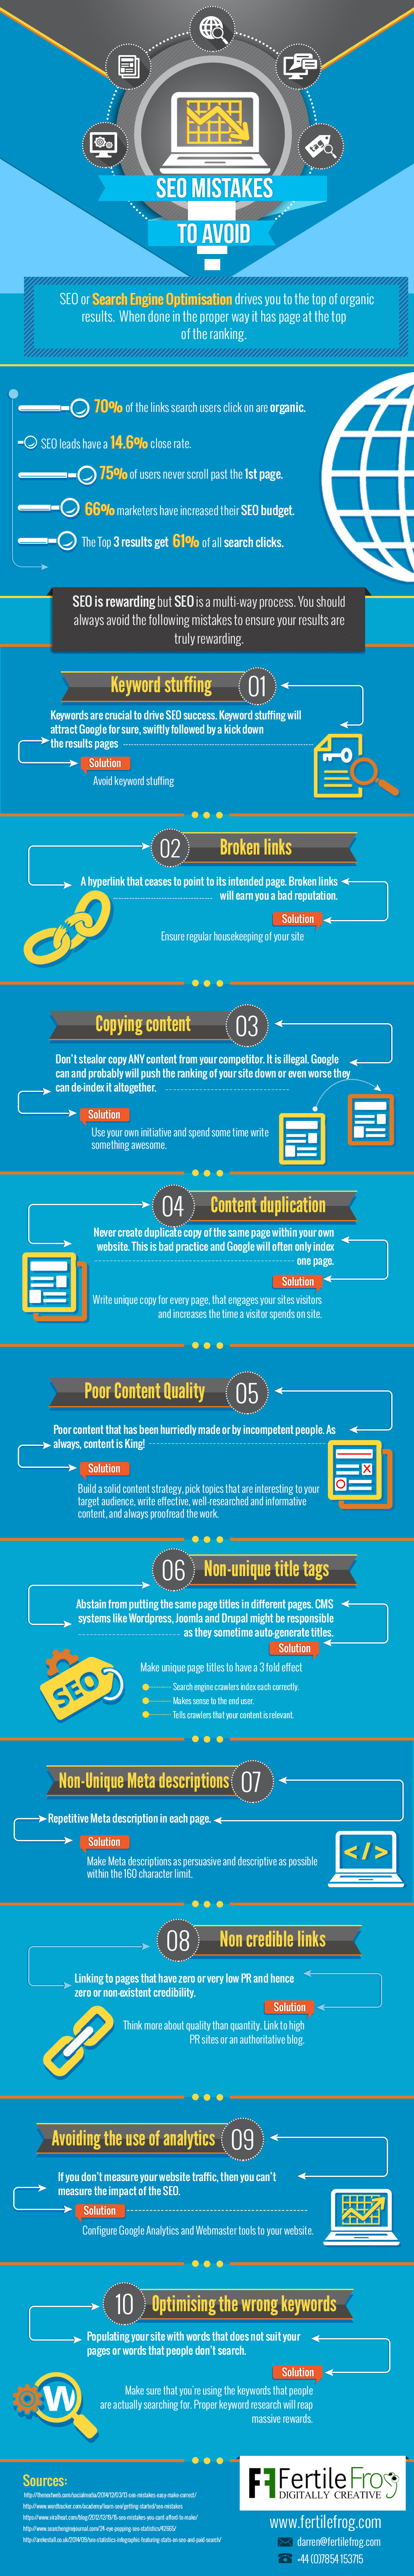 Small Business #SEO Mistakes to Avoid in 2015 - #infographic